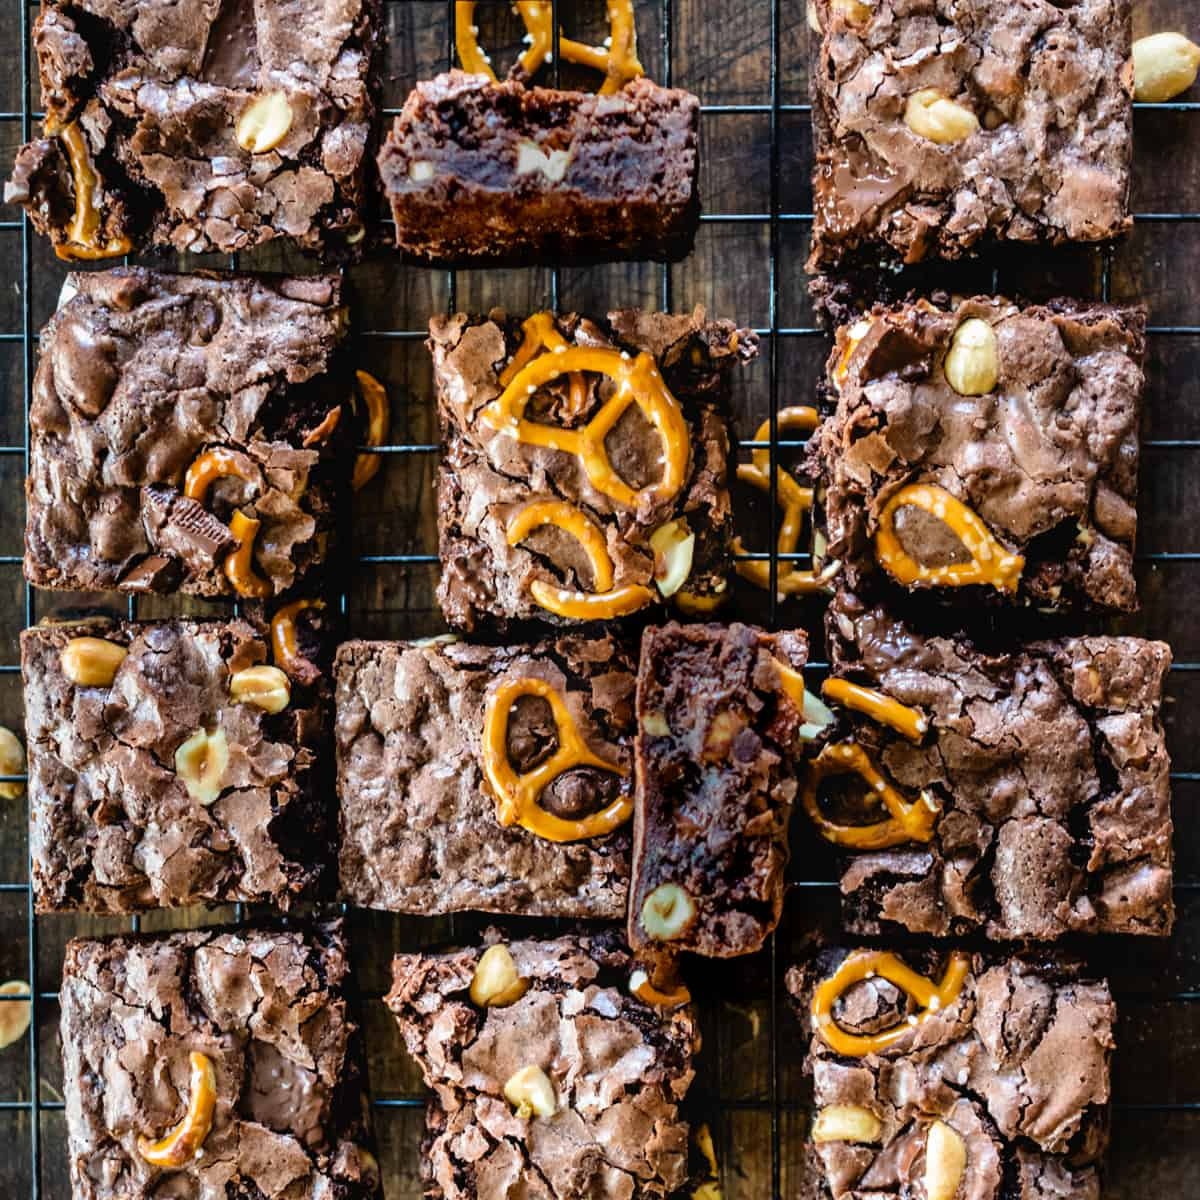 Square cut brownies with nuts, pretzels and chocolate toffee pieces.